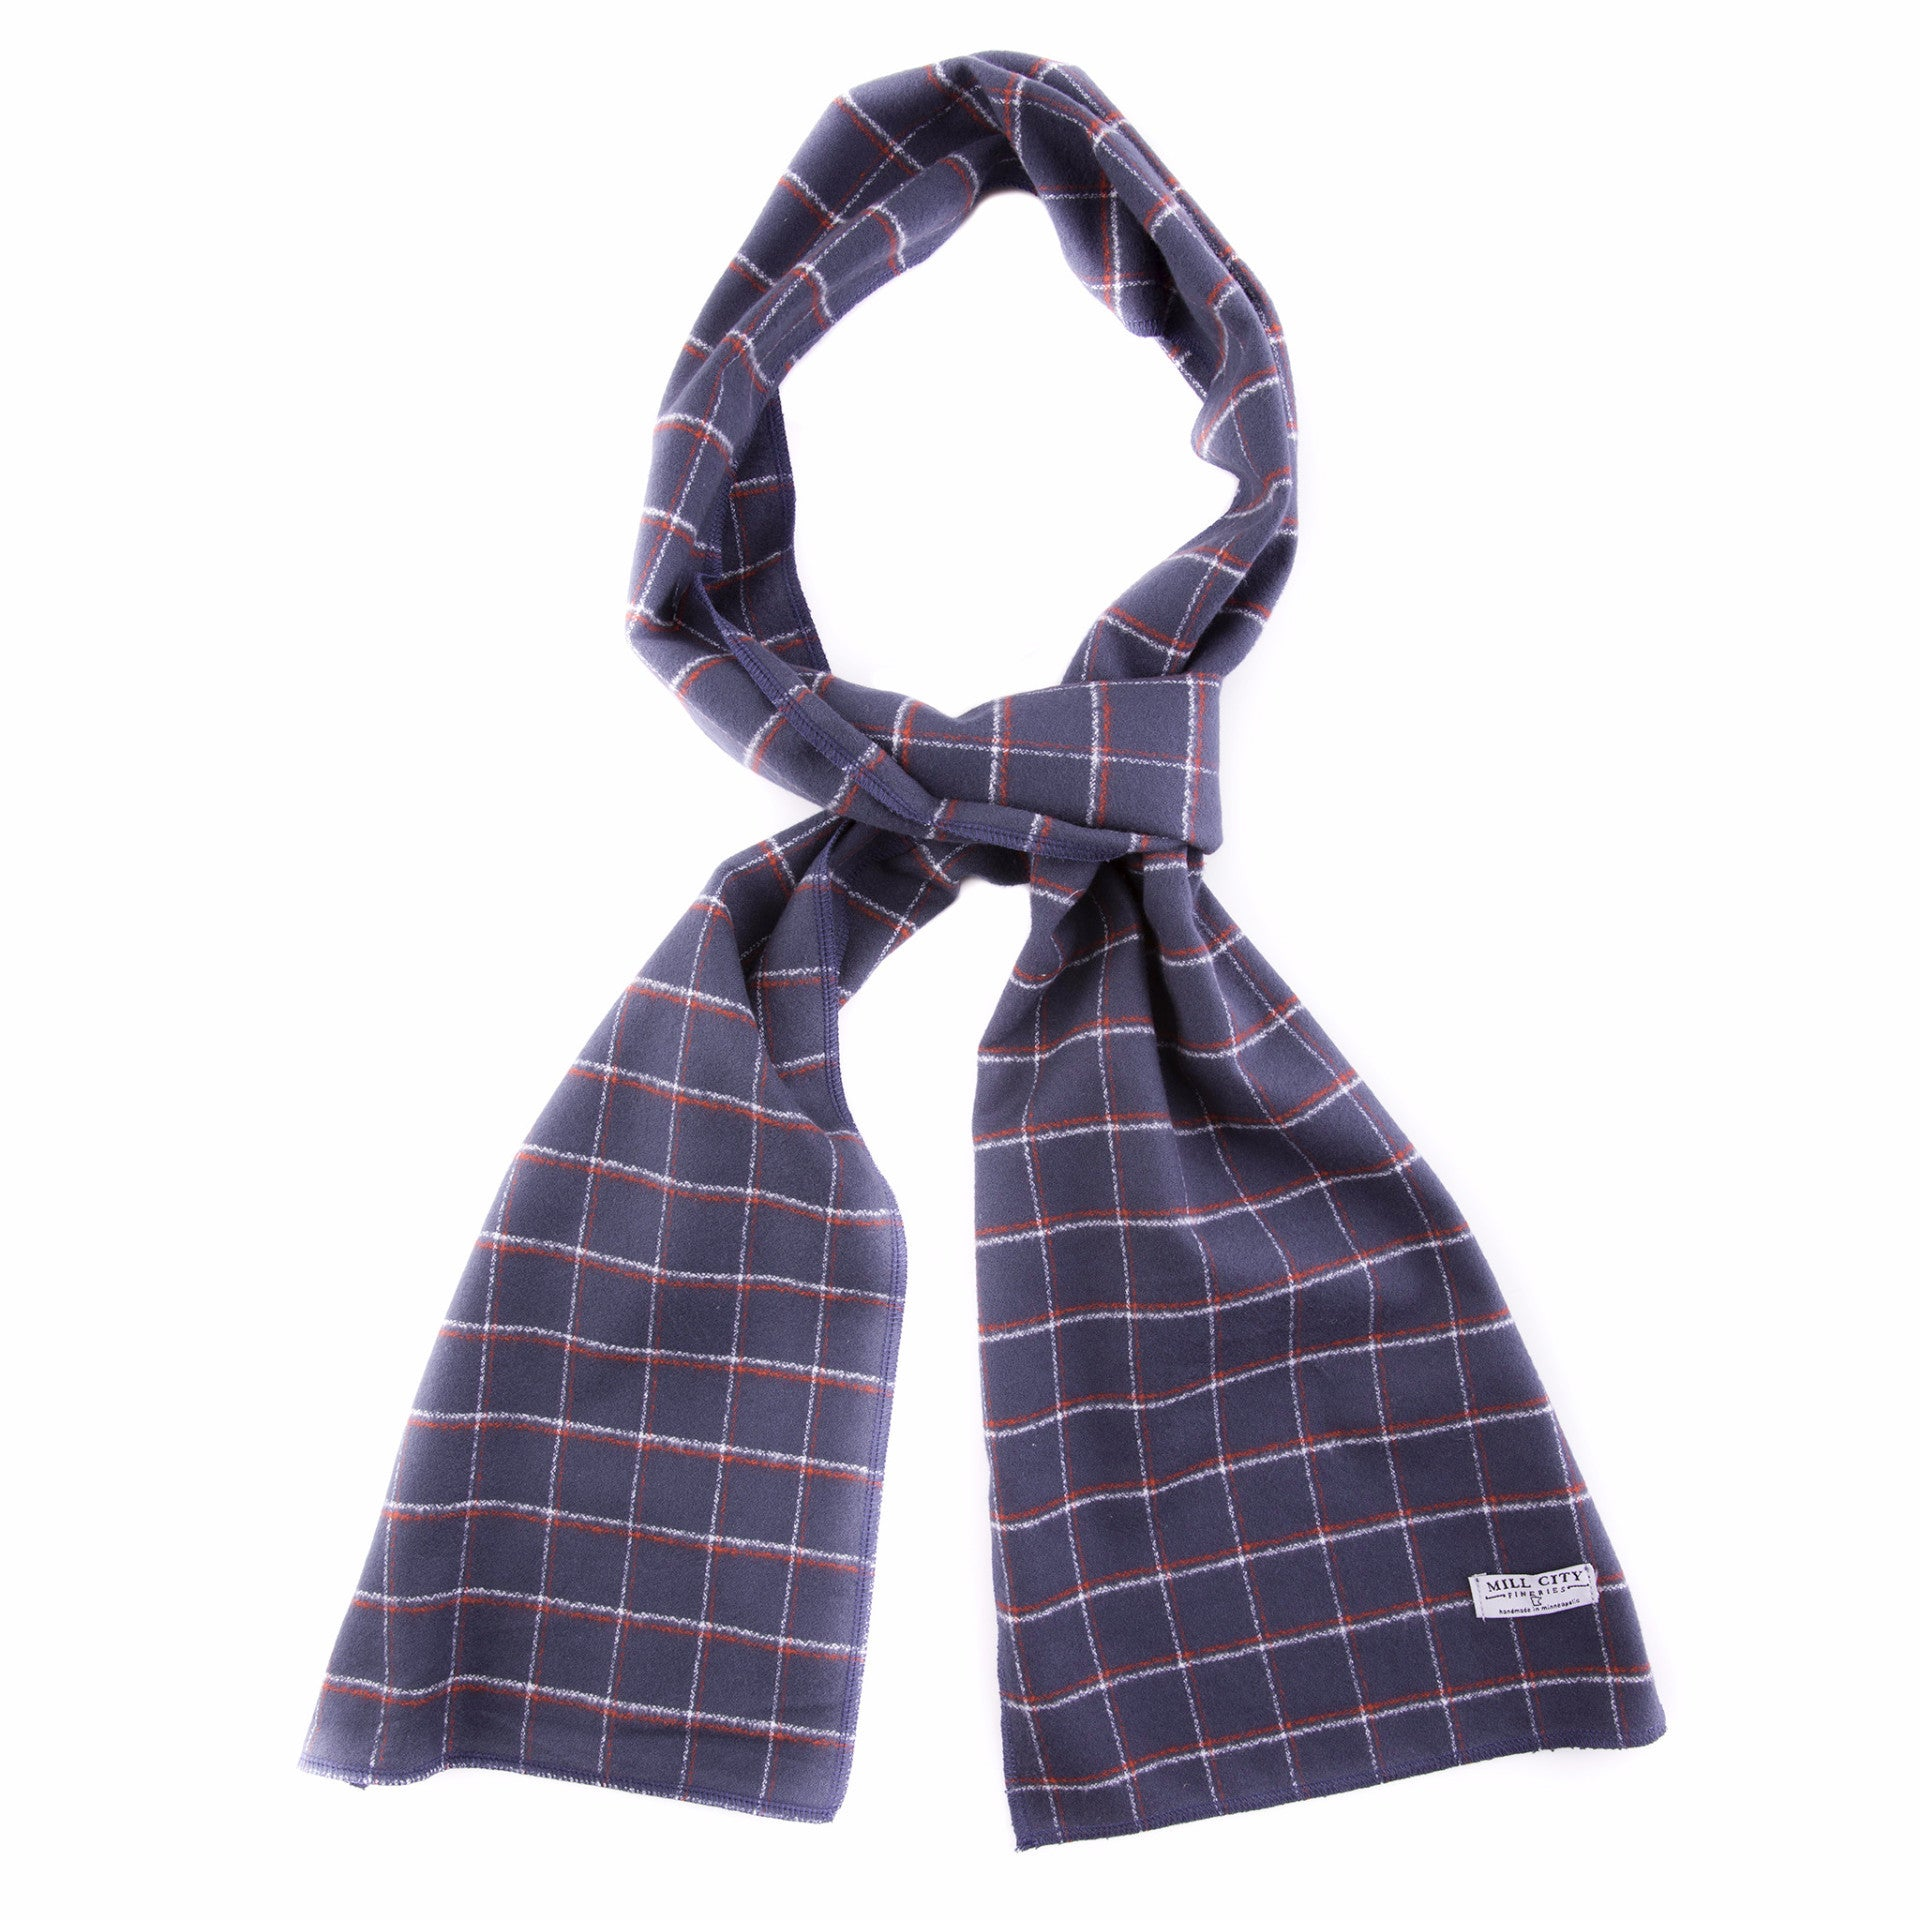 Ambassador Plaid Flannel Scarf